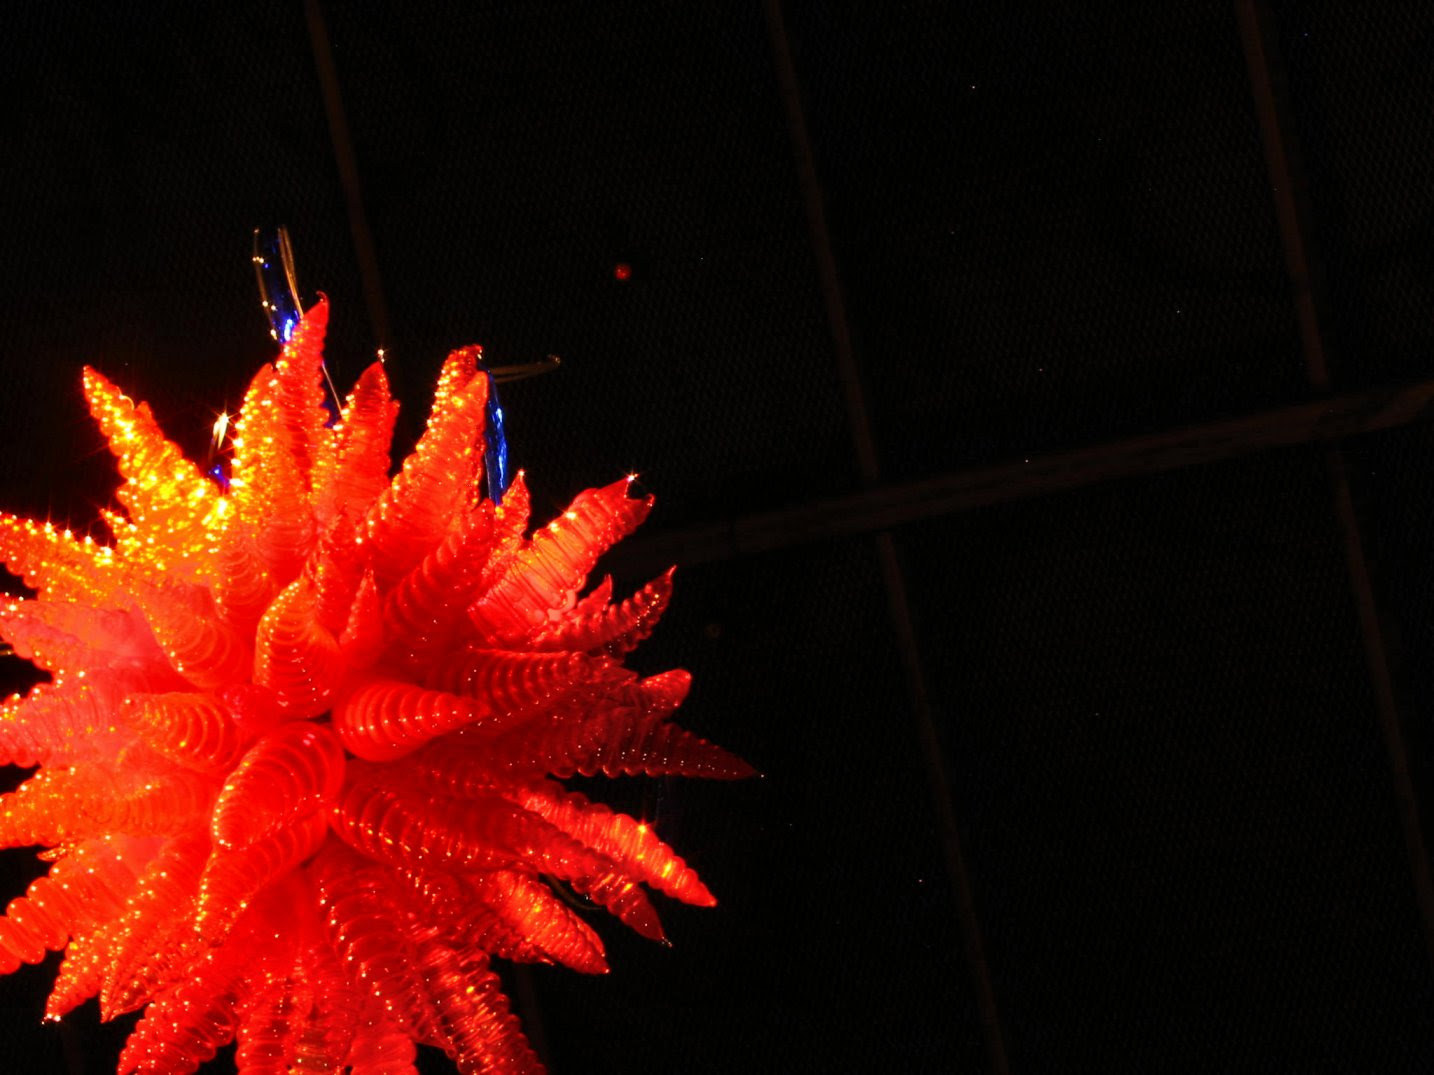 Chihuly Glass Sculpture exhibit at the Desert Botanical Gardens in Arizona - soul-amp.com